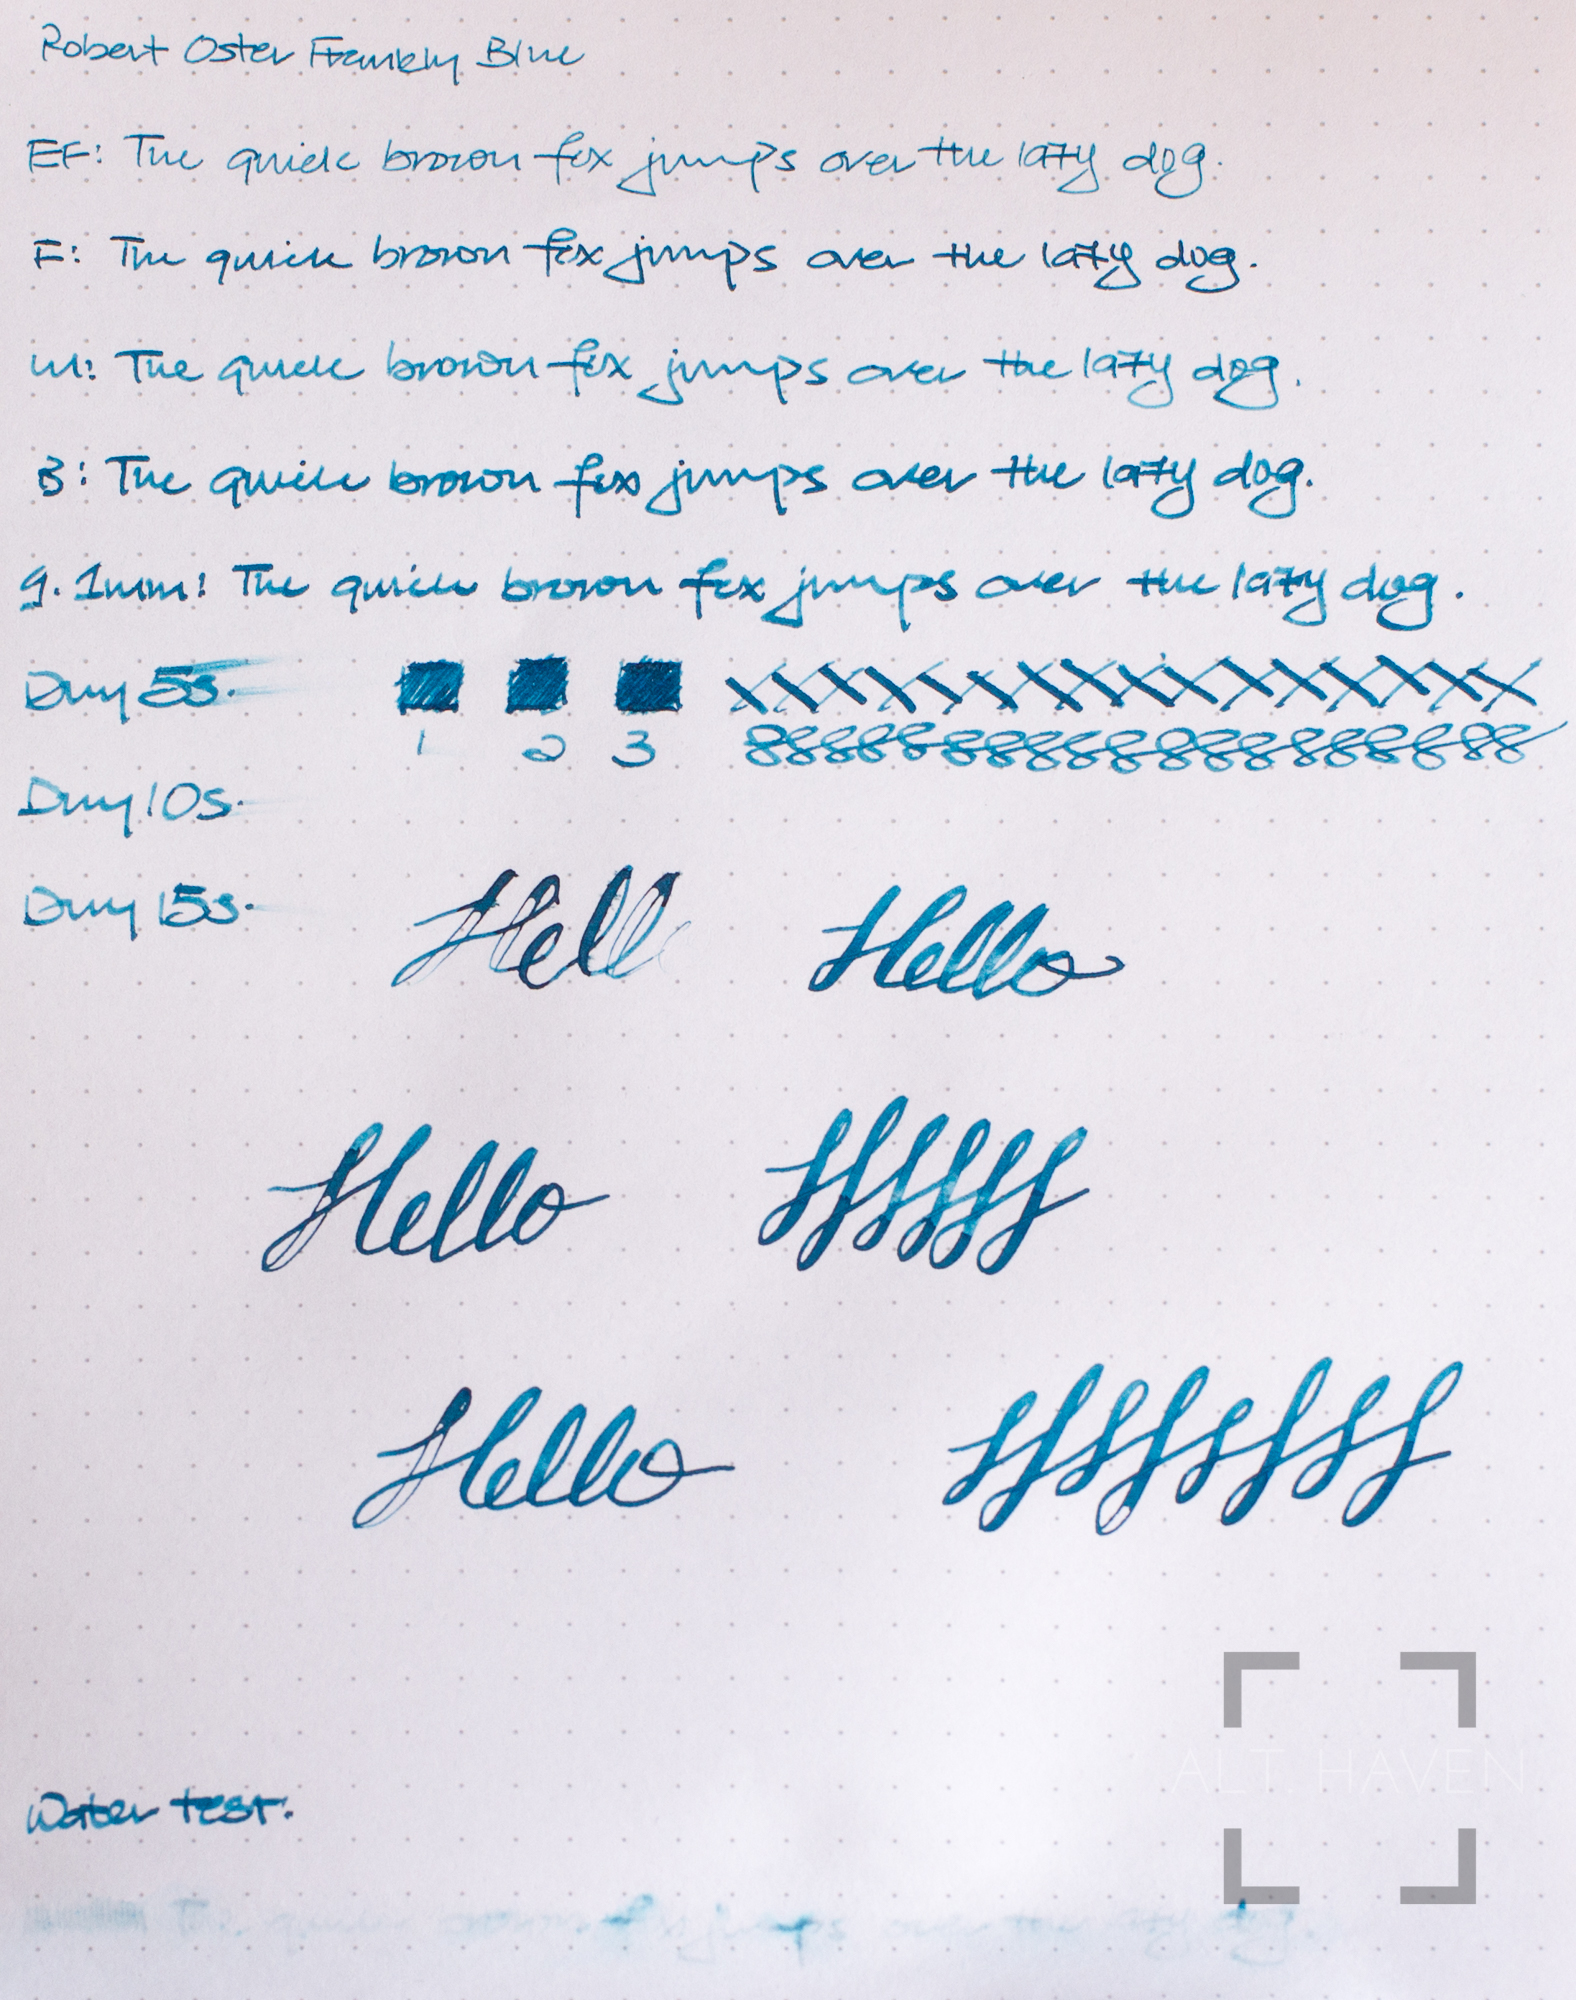 Robert Oster Frankly Blue.jpg